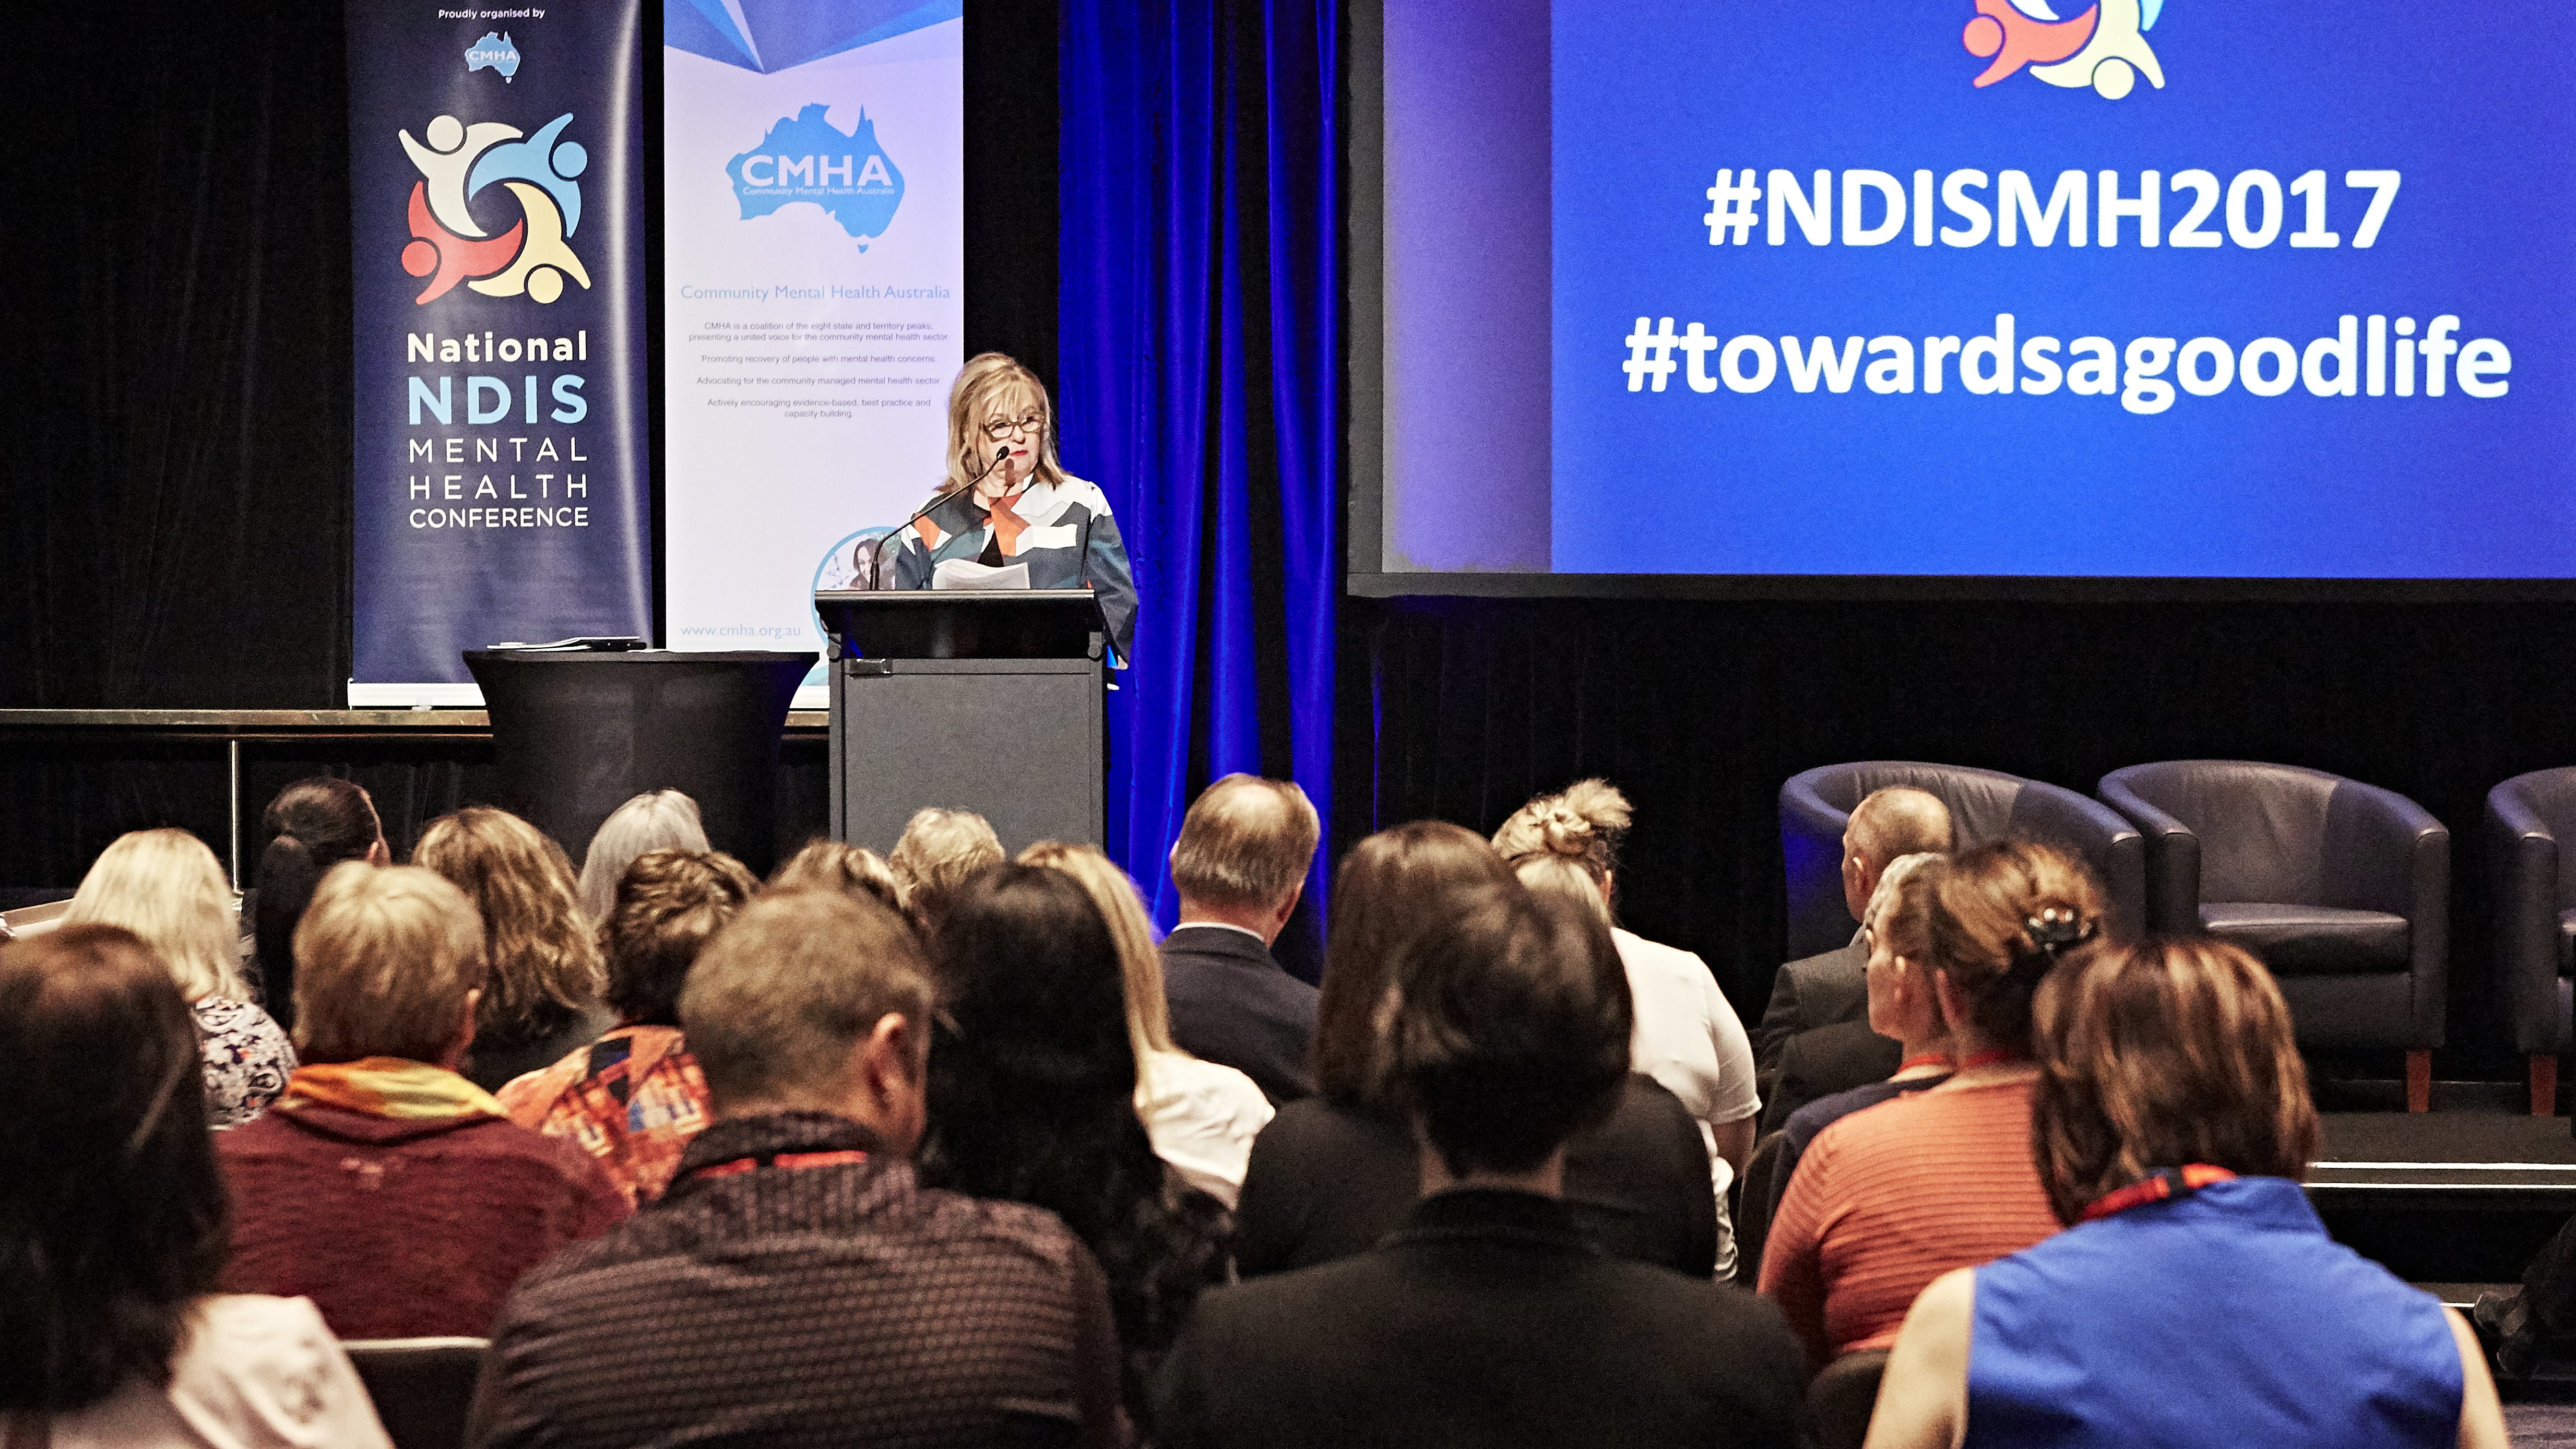 Towards a good life -- plotting a roadmap for the NDIS and community-managed mental health